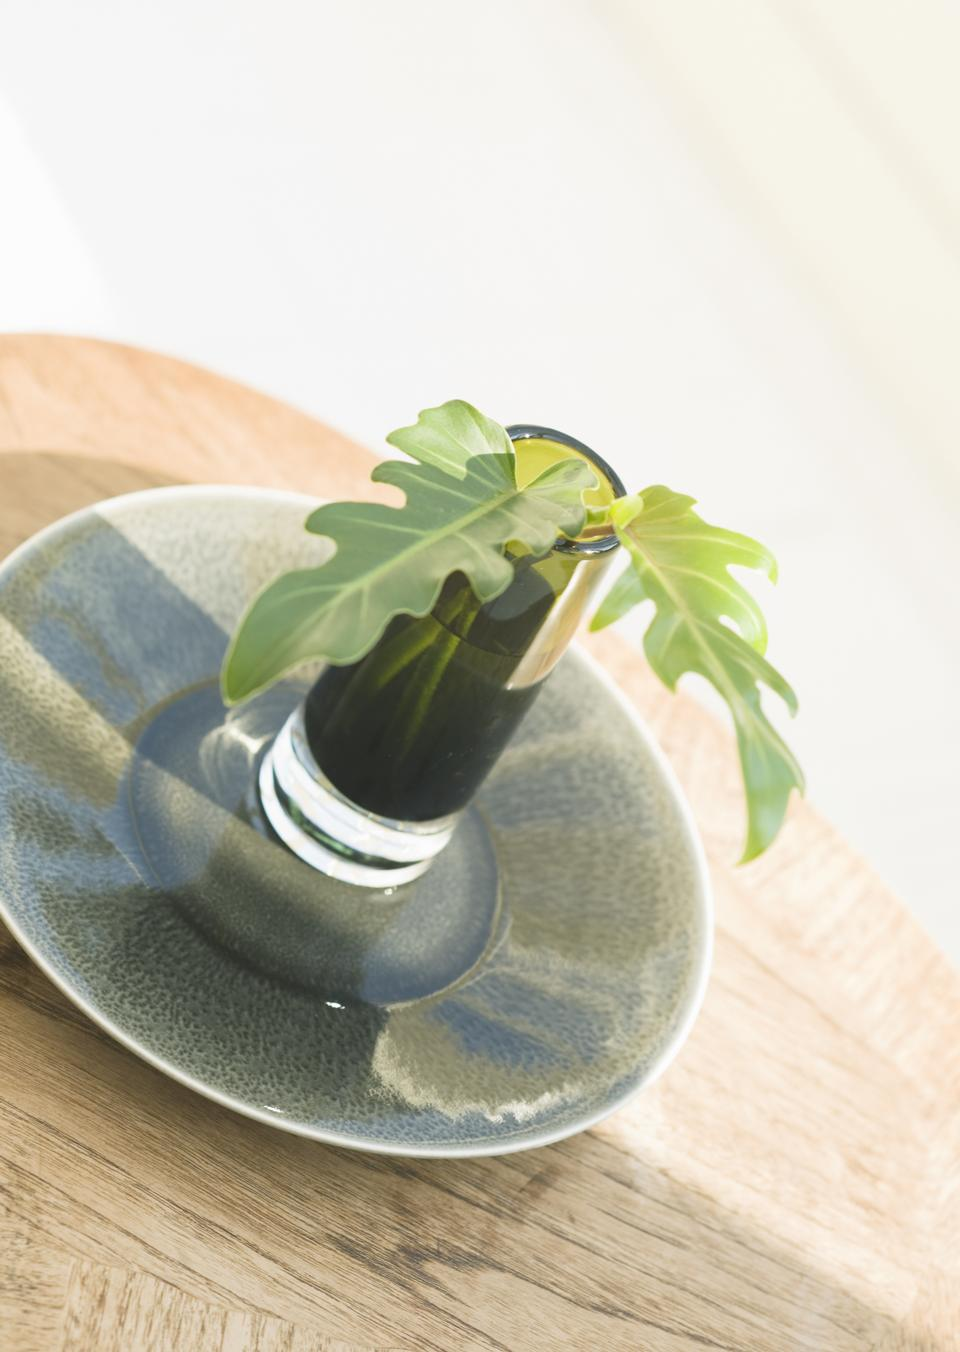 Indoor plant in water glass on